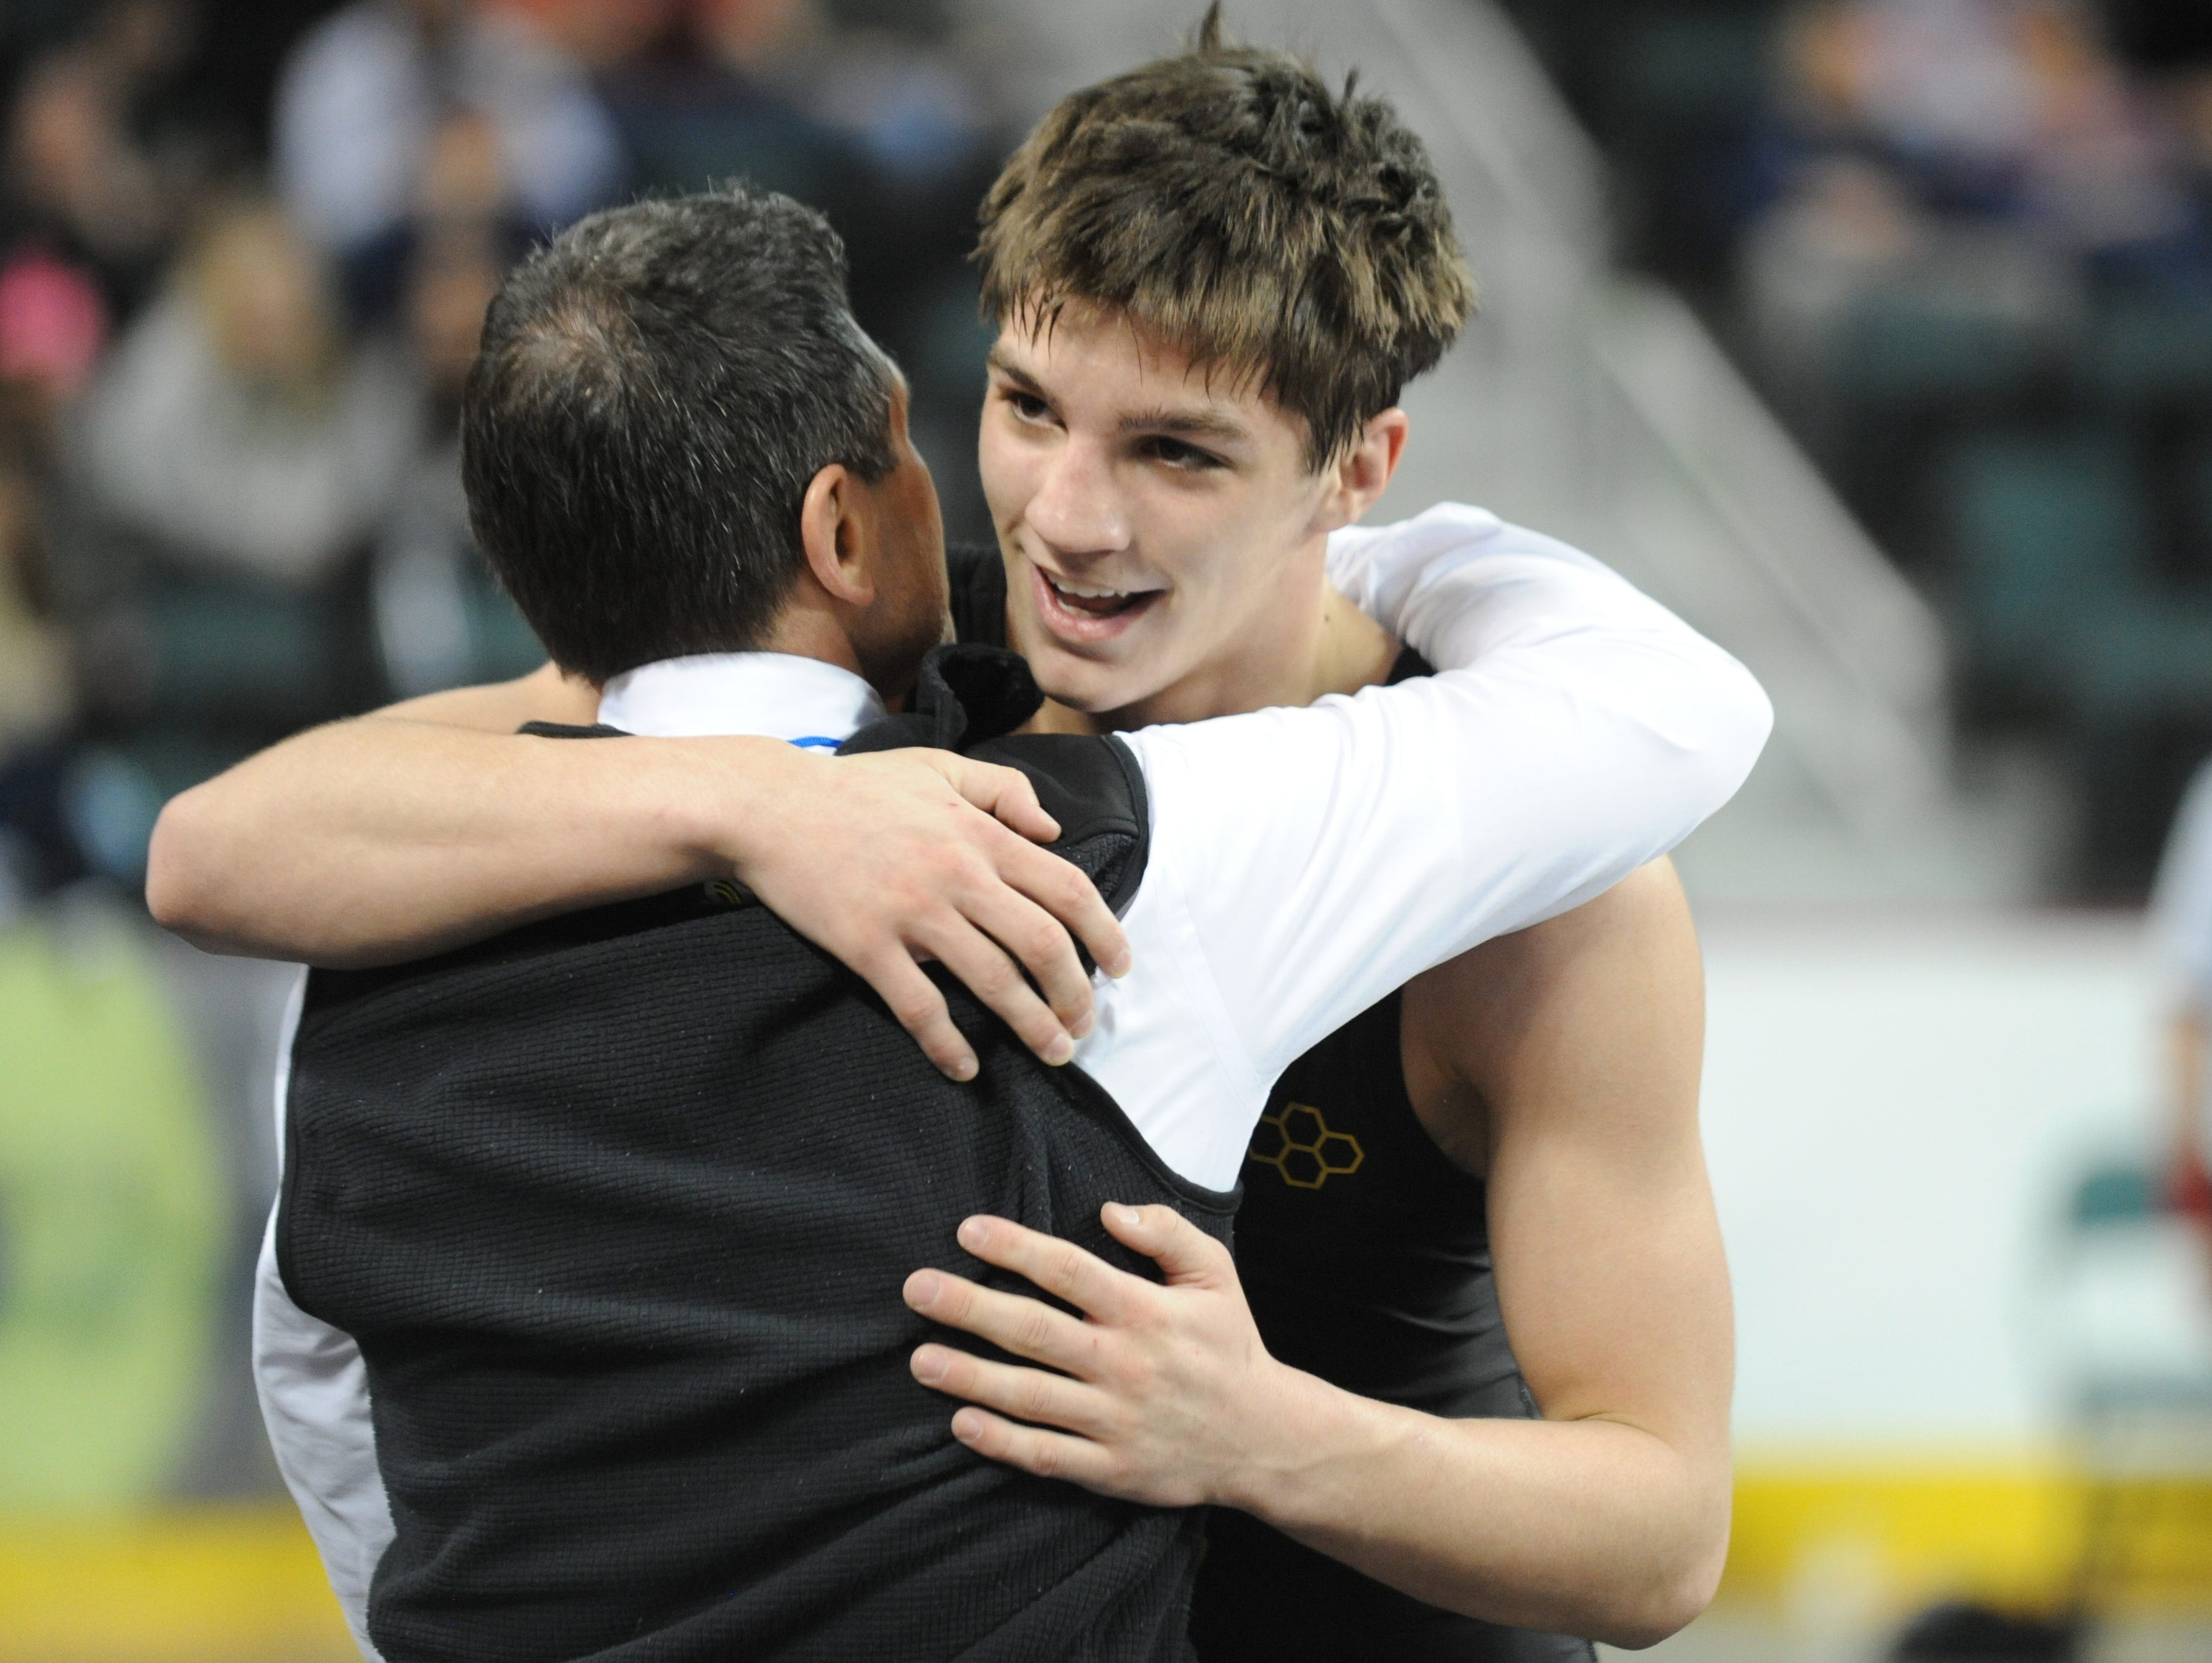 North Hunterdon's Michael Wilson hugs his coach after winning his 160-pound 7th place both against West Orange's Colin Morgan during the NJSIAA Individual Wrestling Championships at Boardwalk Hall in Atlantic City, Saturday, March 2, 2019.